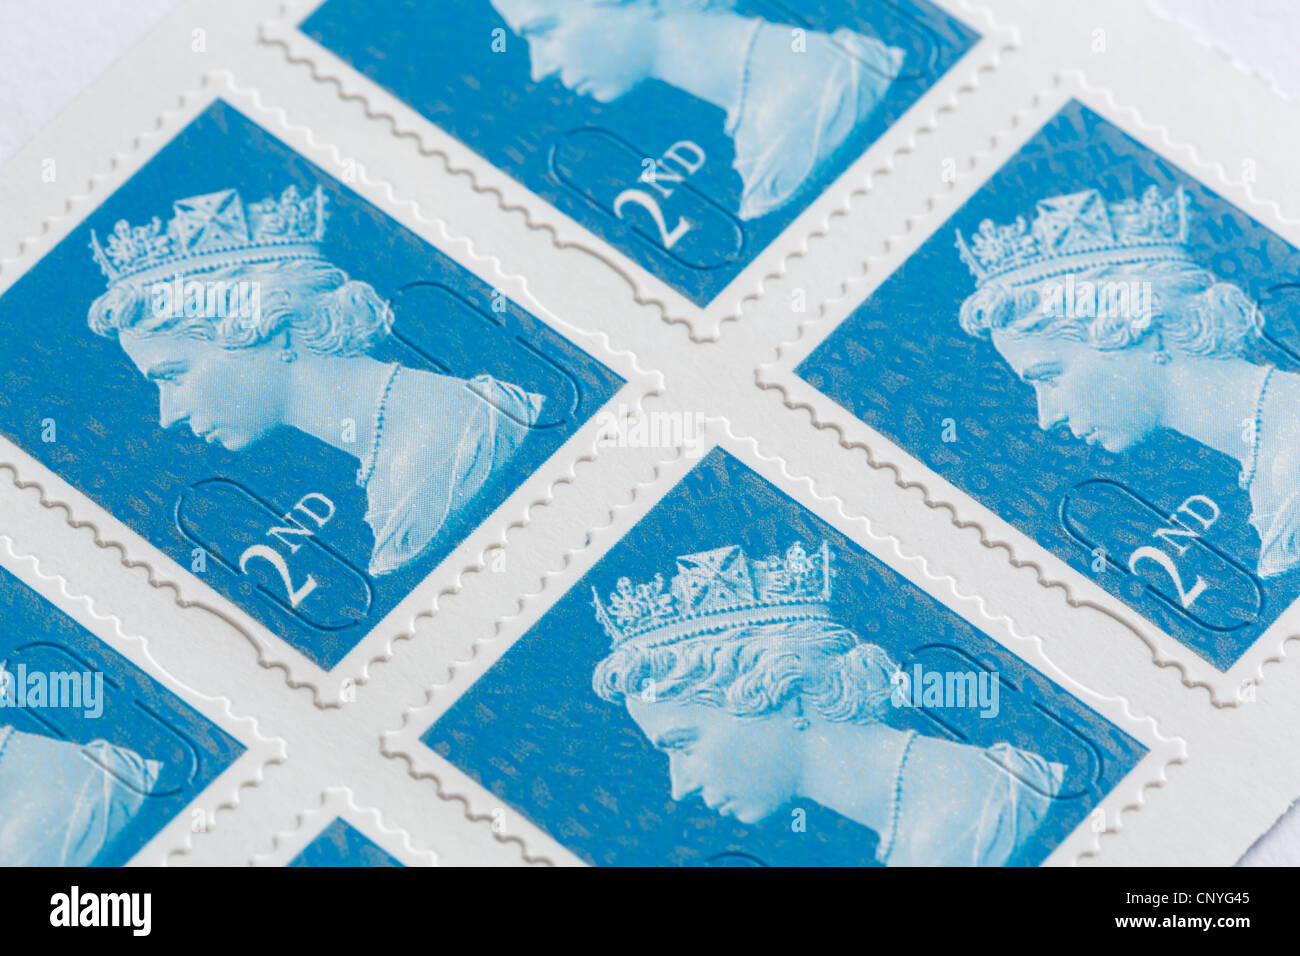 Royal Mail second class postage stamps. England, UK, Britain. - Stock Image